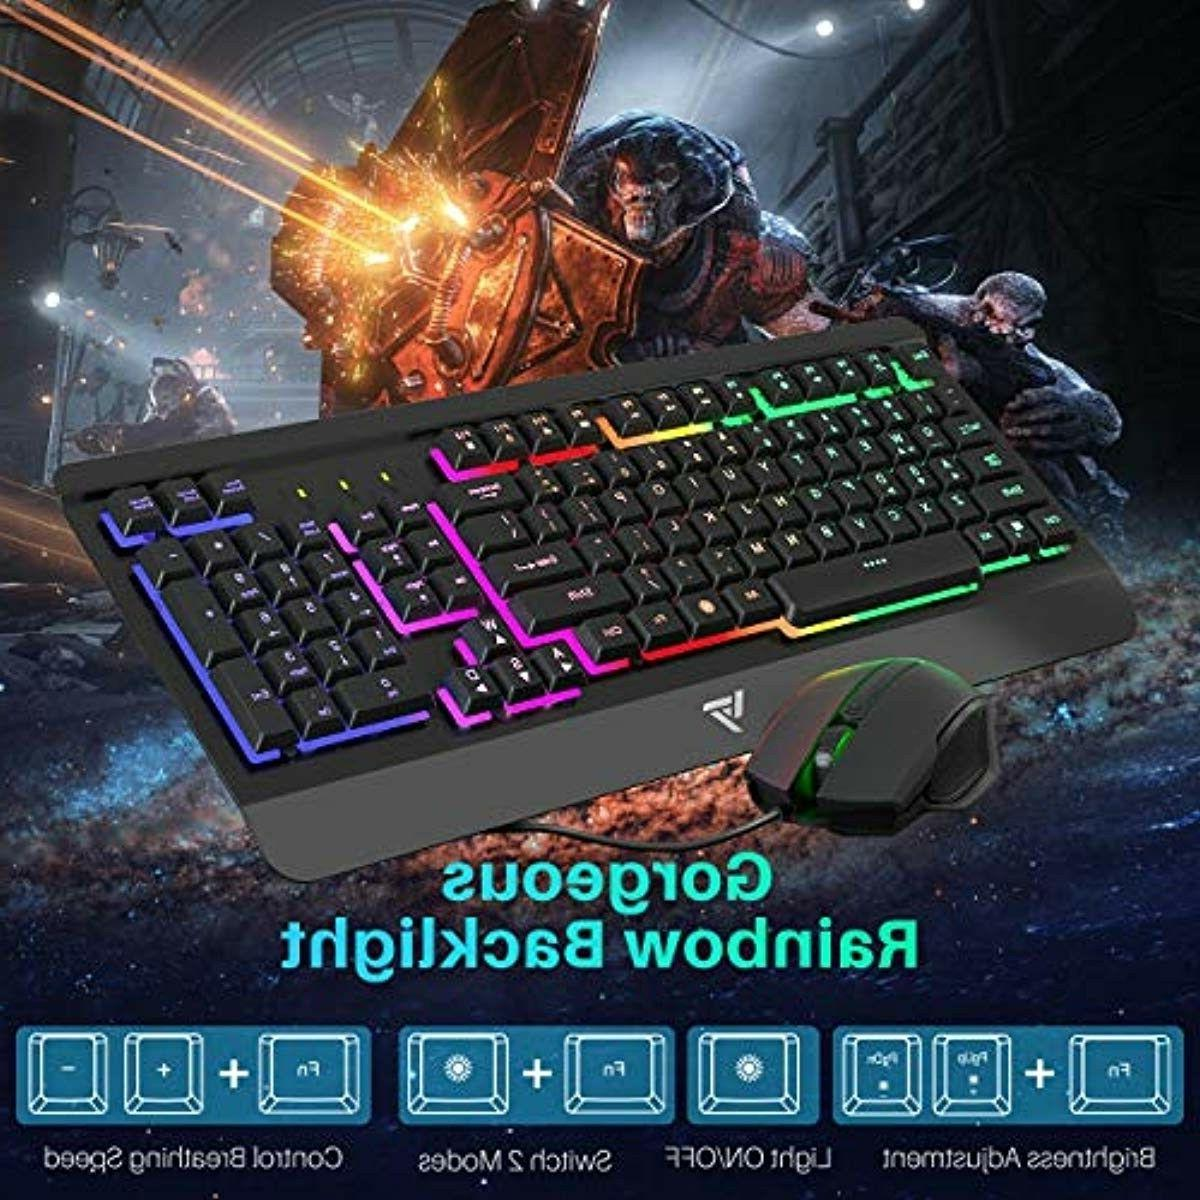 Gaming Keyboard Combo,Ultra-Slim,LED Backlit,Wrist PC